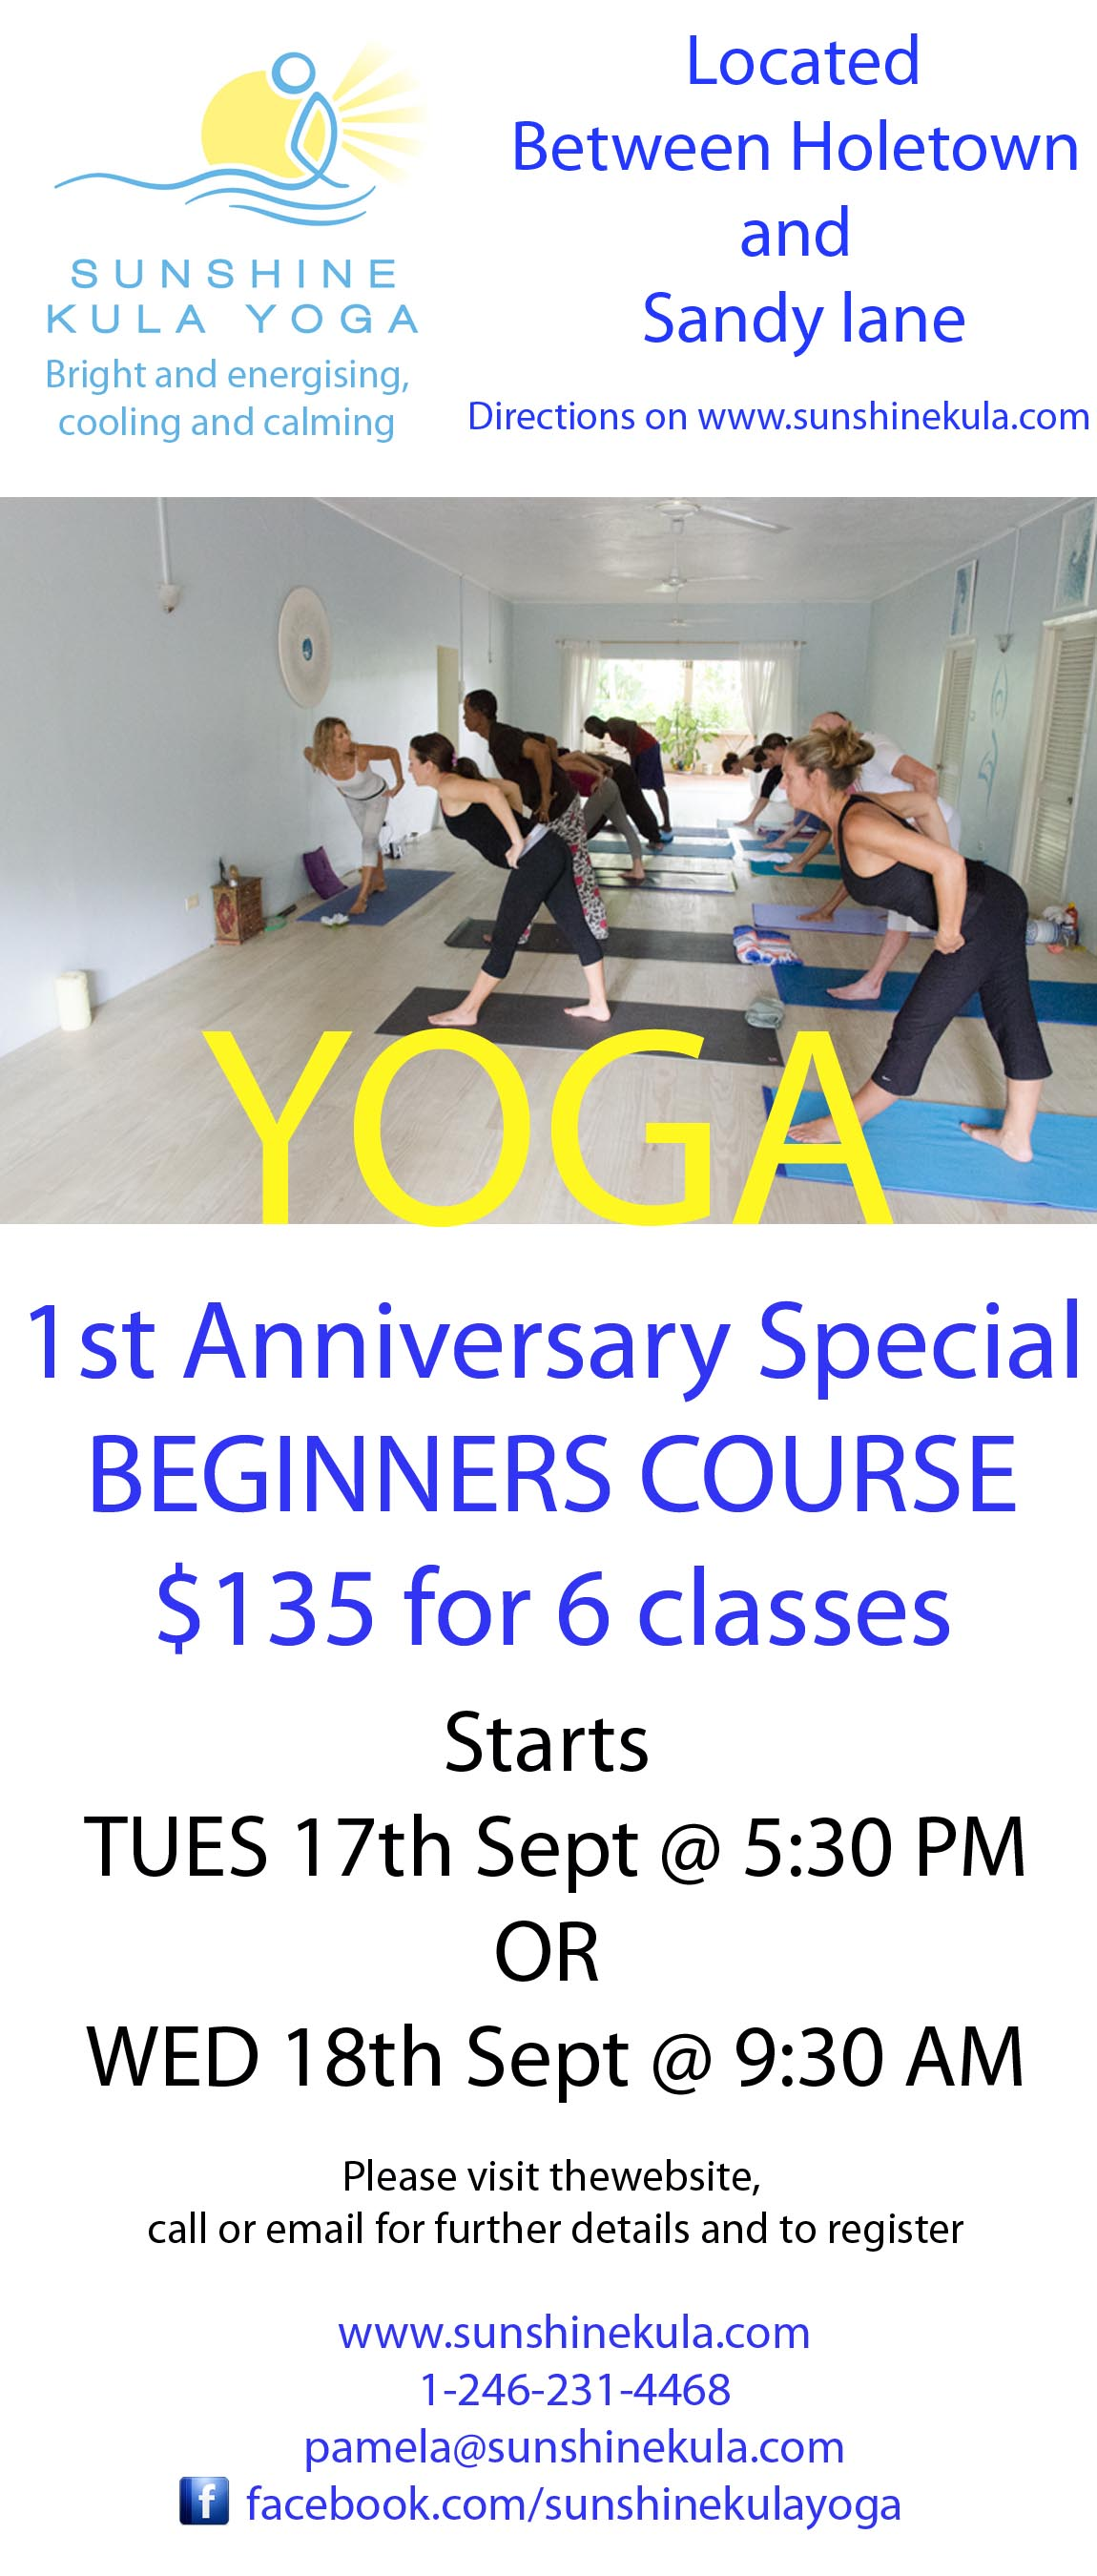 Yoga In Barbados First Anniversary Special Beginners Course Circuit Training For Sunshine Kula Web